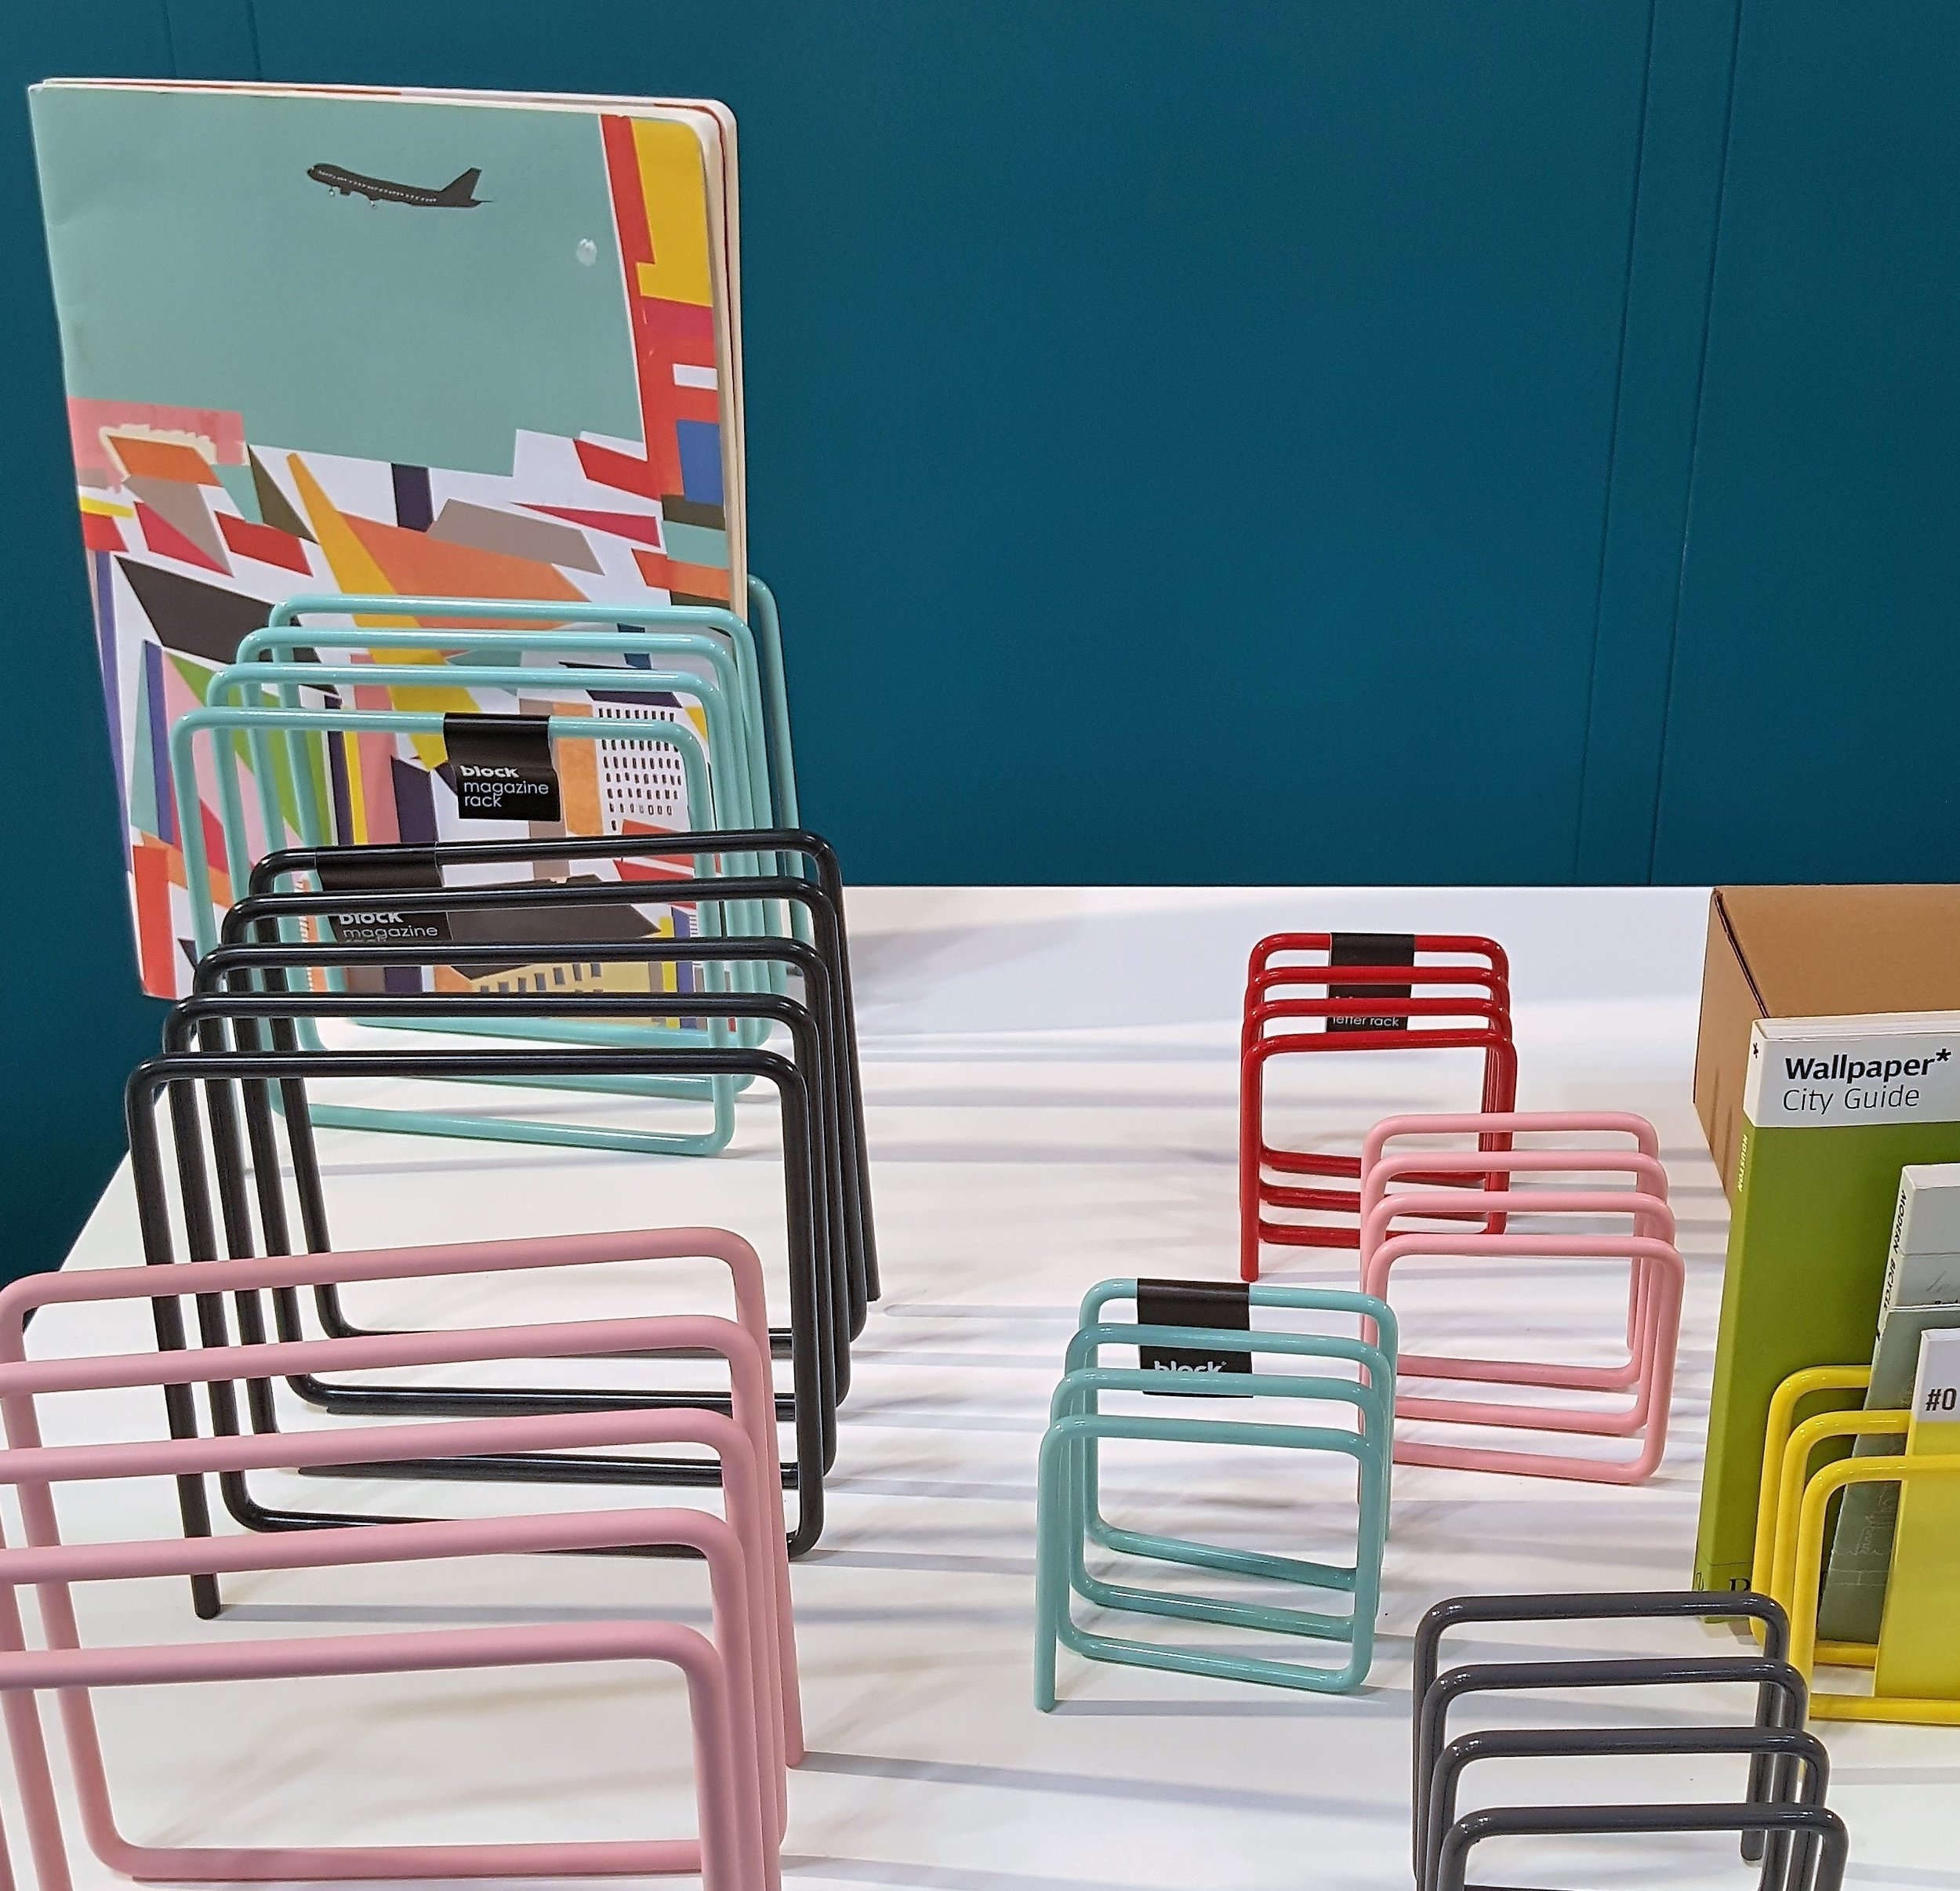 Spare in design but rich in color, powder-coated steel racks work on desks, kitchen worktables or floors. Letter-size (about 3x3x3 inches) £12, magazine/file size (about 6x6x6 inches) £20. From UK-based Block Design. blockdesign.co.uk